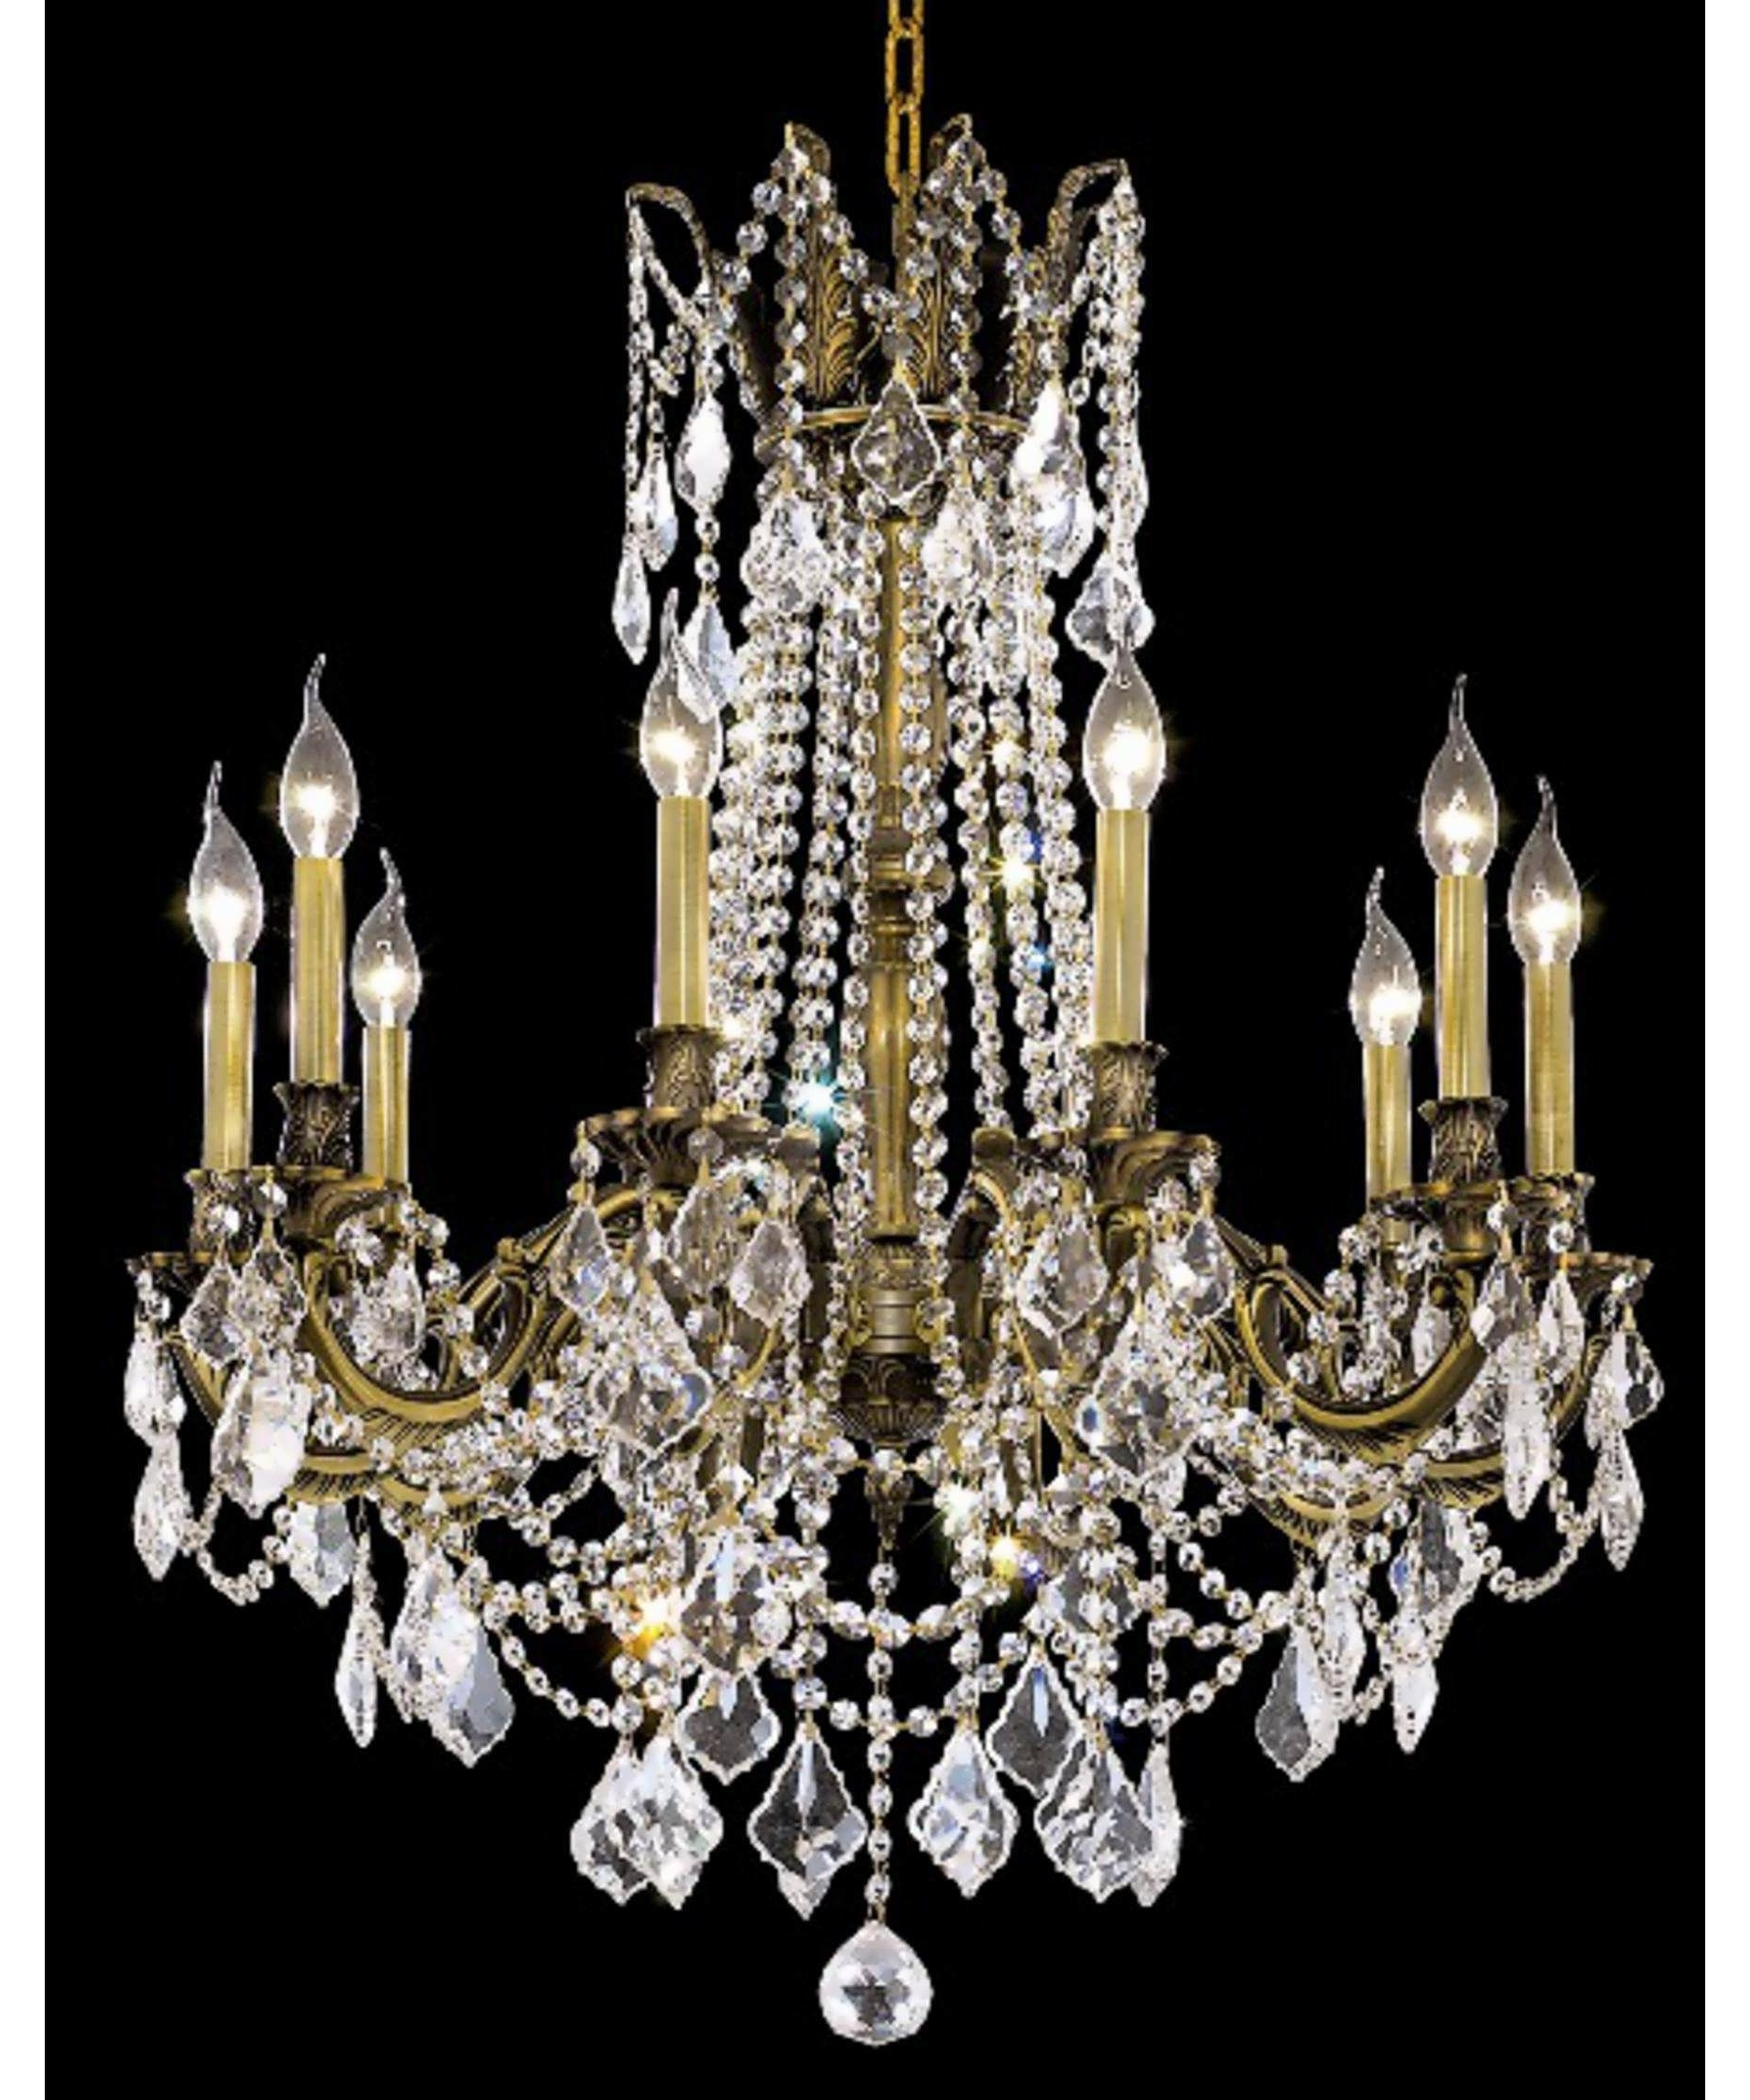 Traditional Crystal Chandeliers With Regard To Trendy Chandelier : Traditional Crystal Chandeliers Wood Chandelier Light (View 18 of 20)